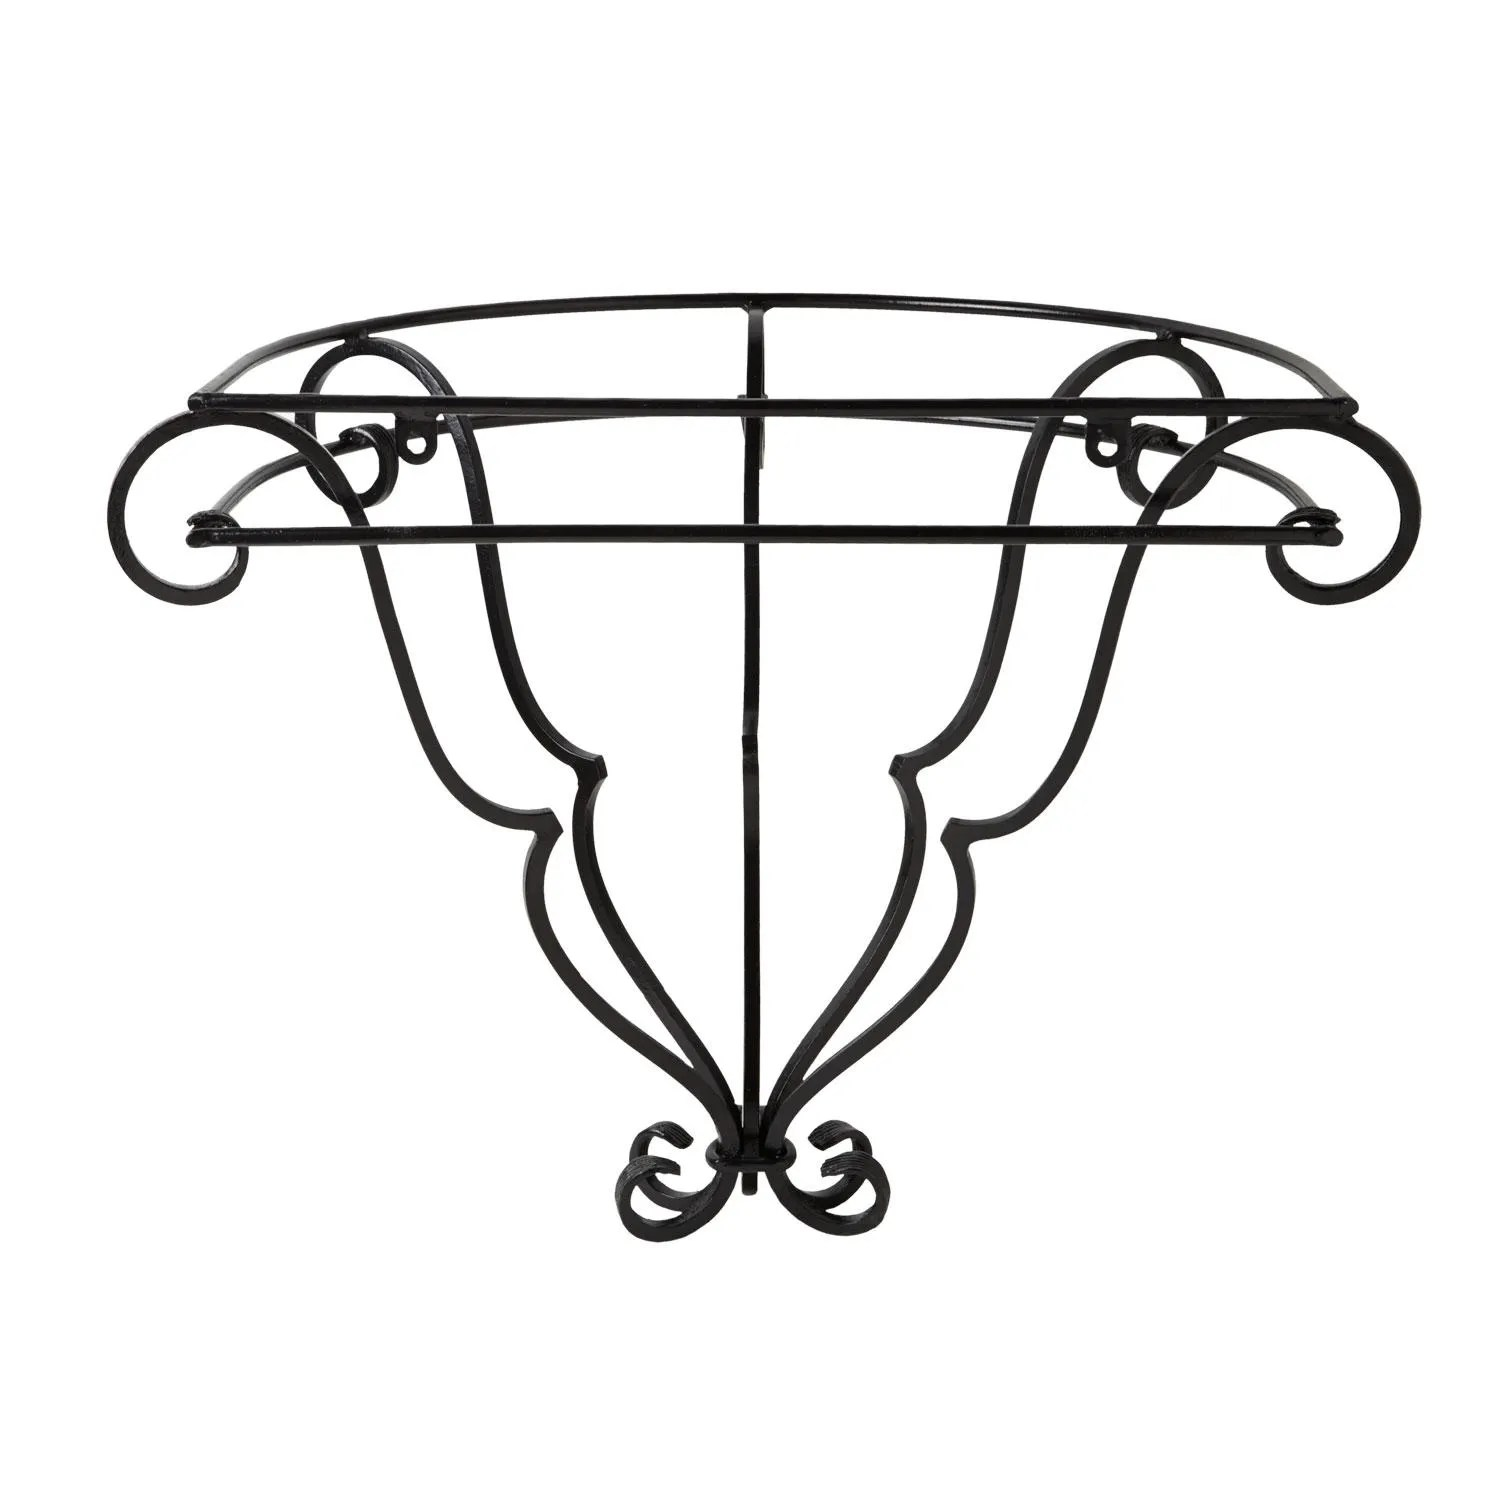 Michel Wall Mount Wrought Iron Vessel Sink Stand With